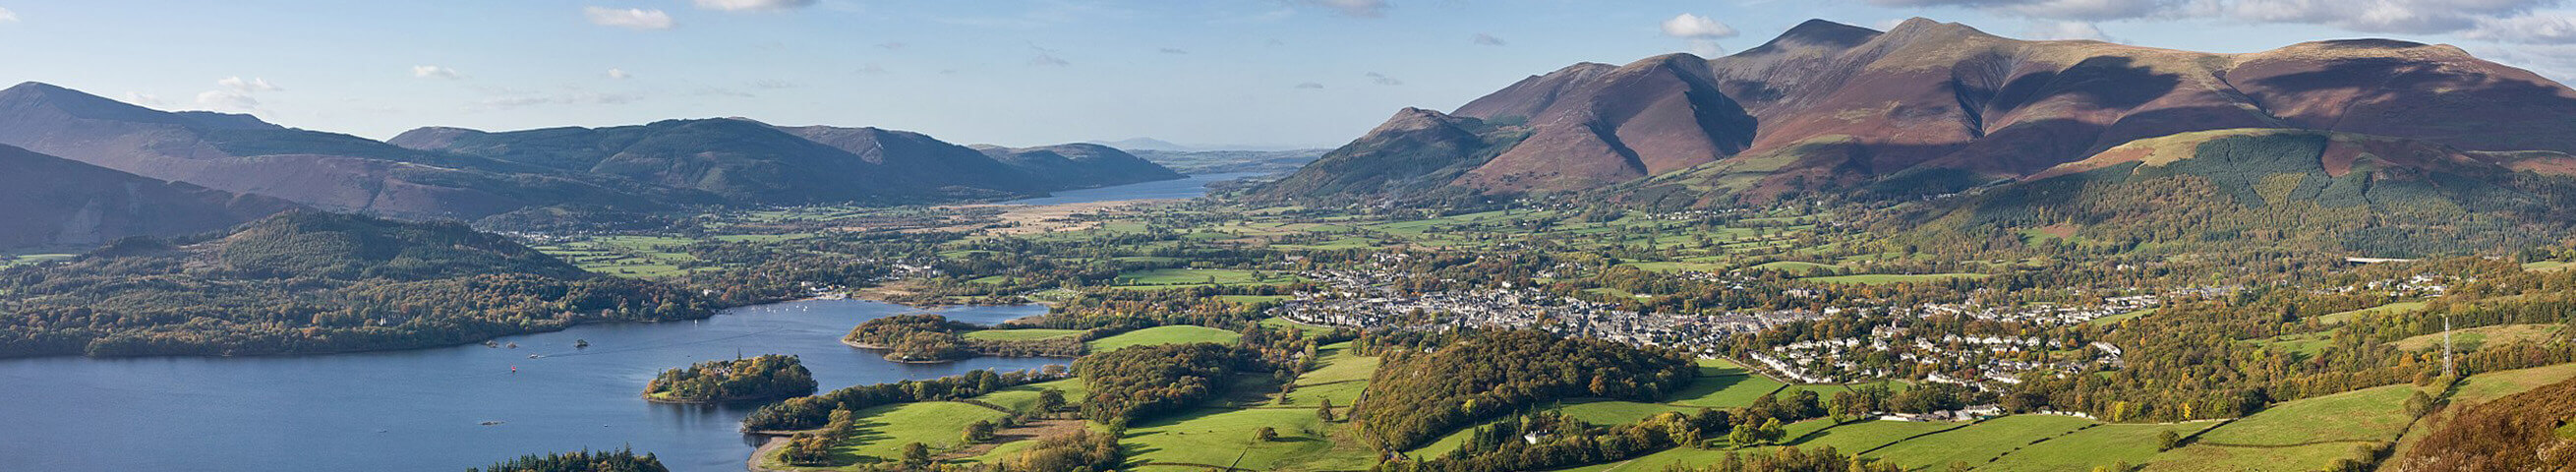 Travel Diaries - Caravan Holiday in Keswick